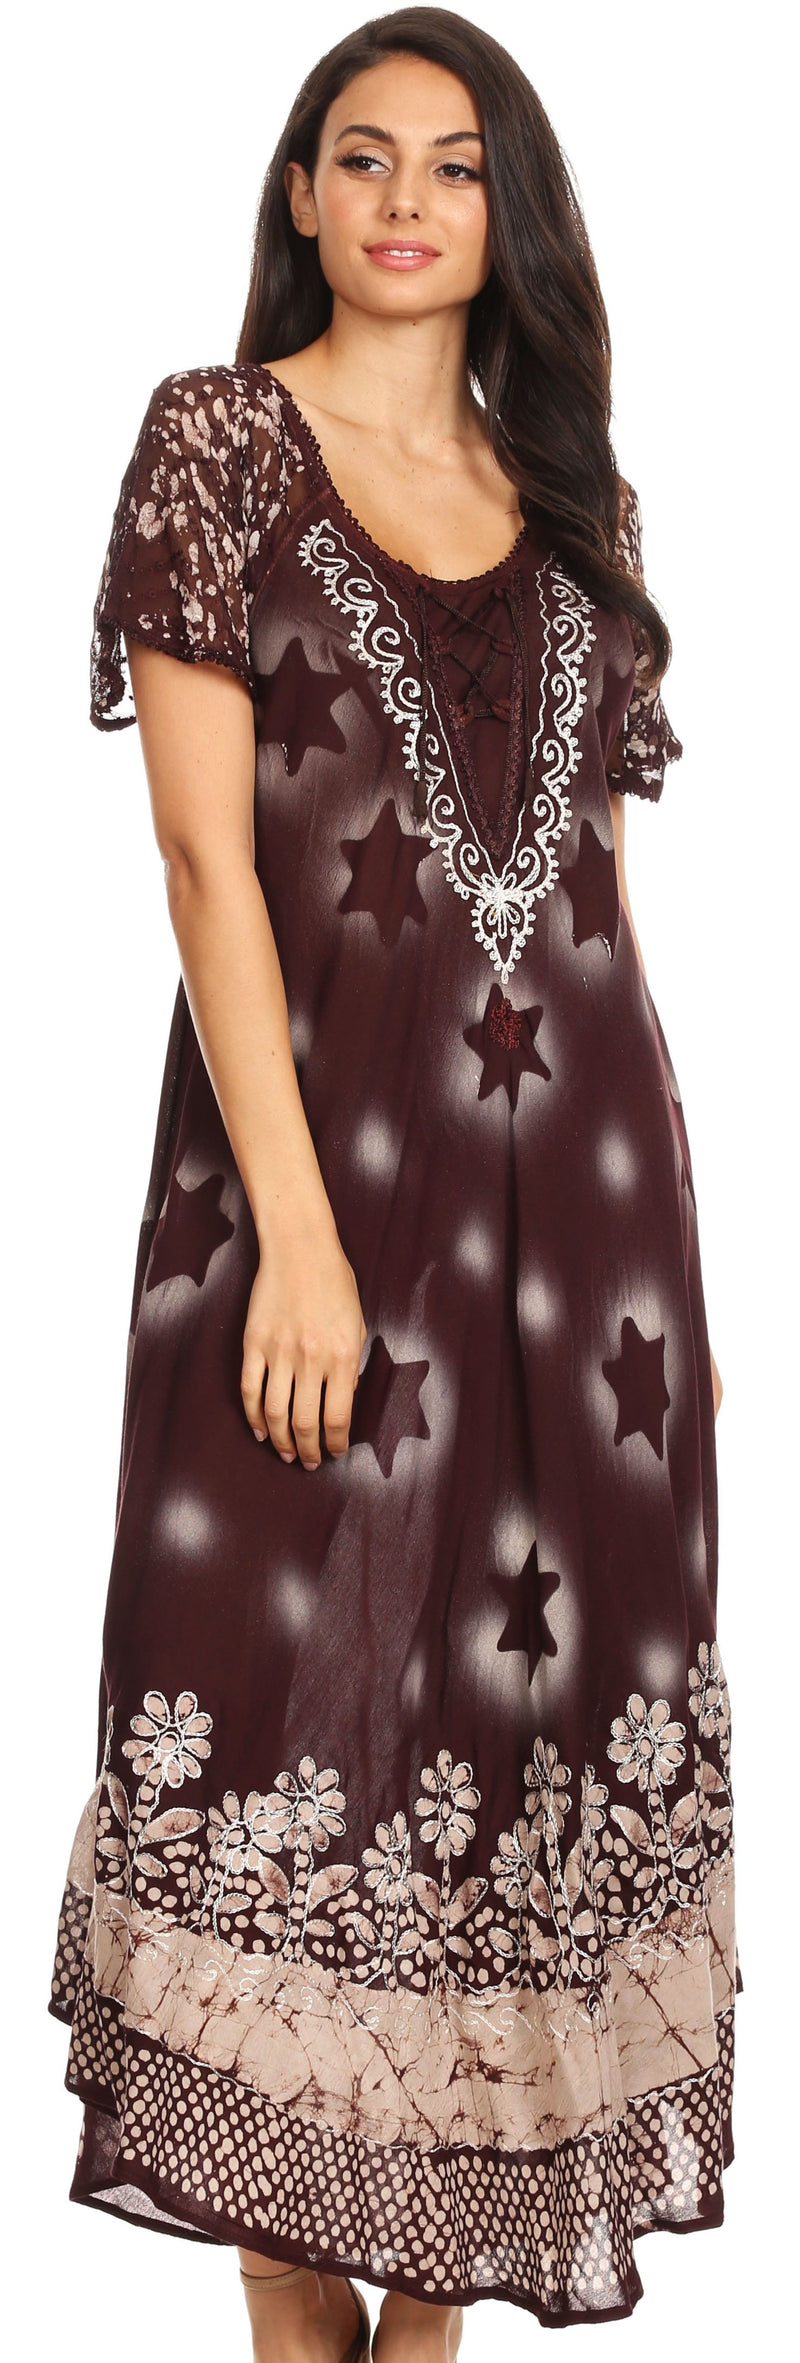 Sakkas Marga Women Maxi Summer Caftan Swimsuit Beach Cover Up Dress with Lace